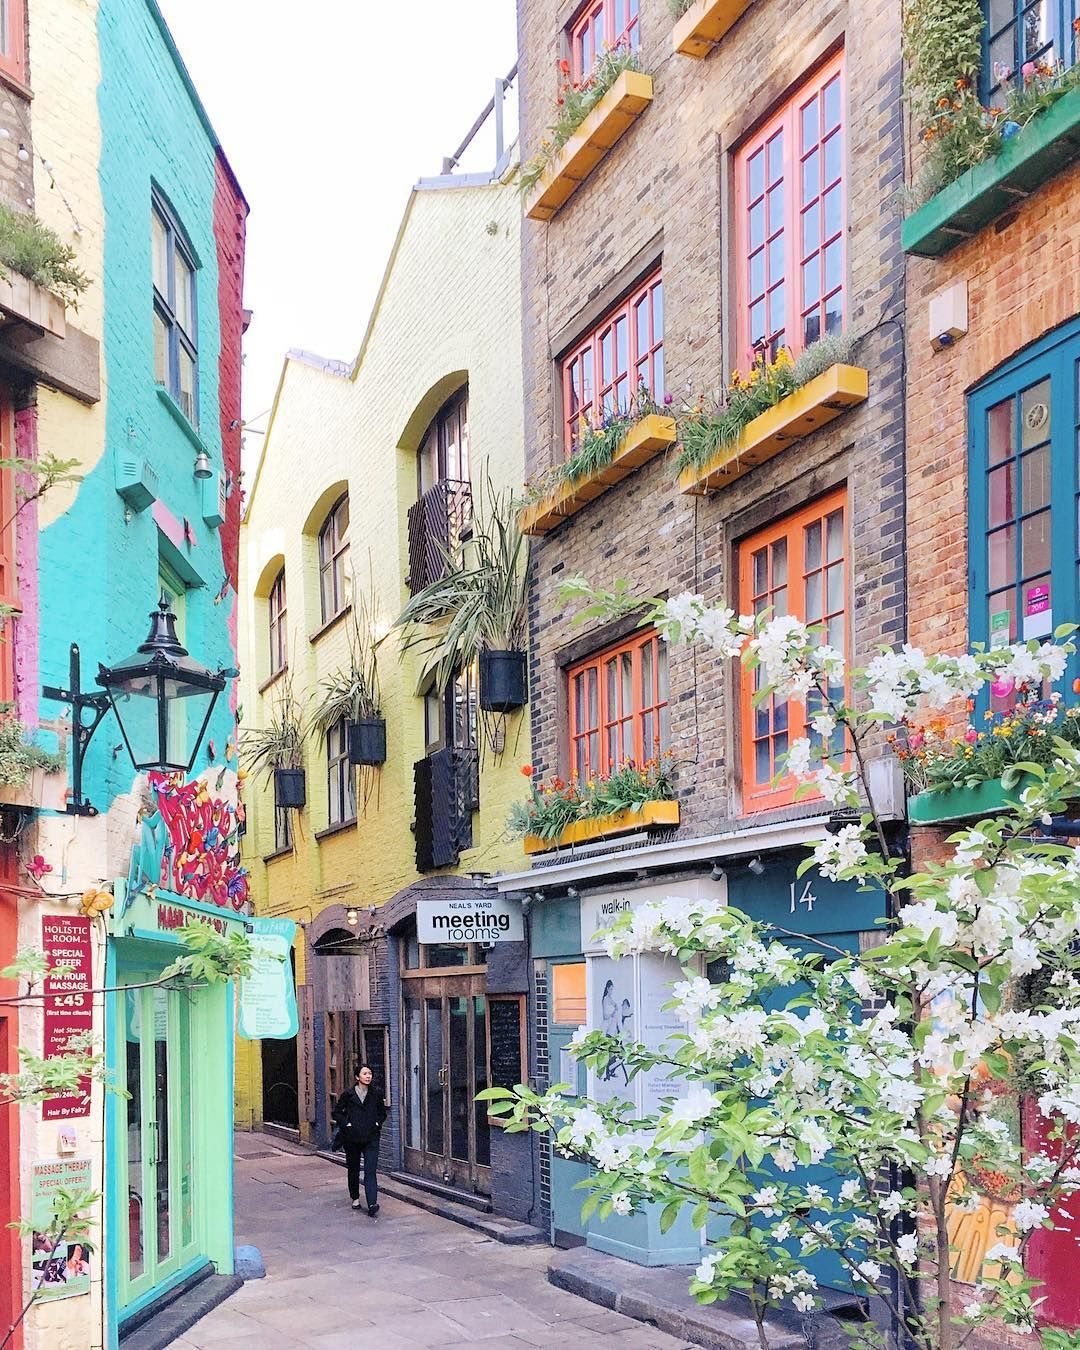 Olga (@liolaliola) Instagram-Neal's Yard always looks festive #beautifulplaces